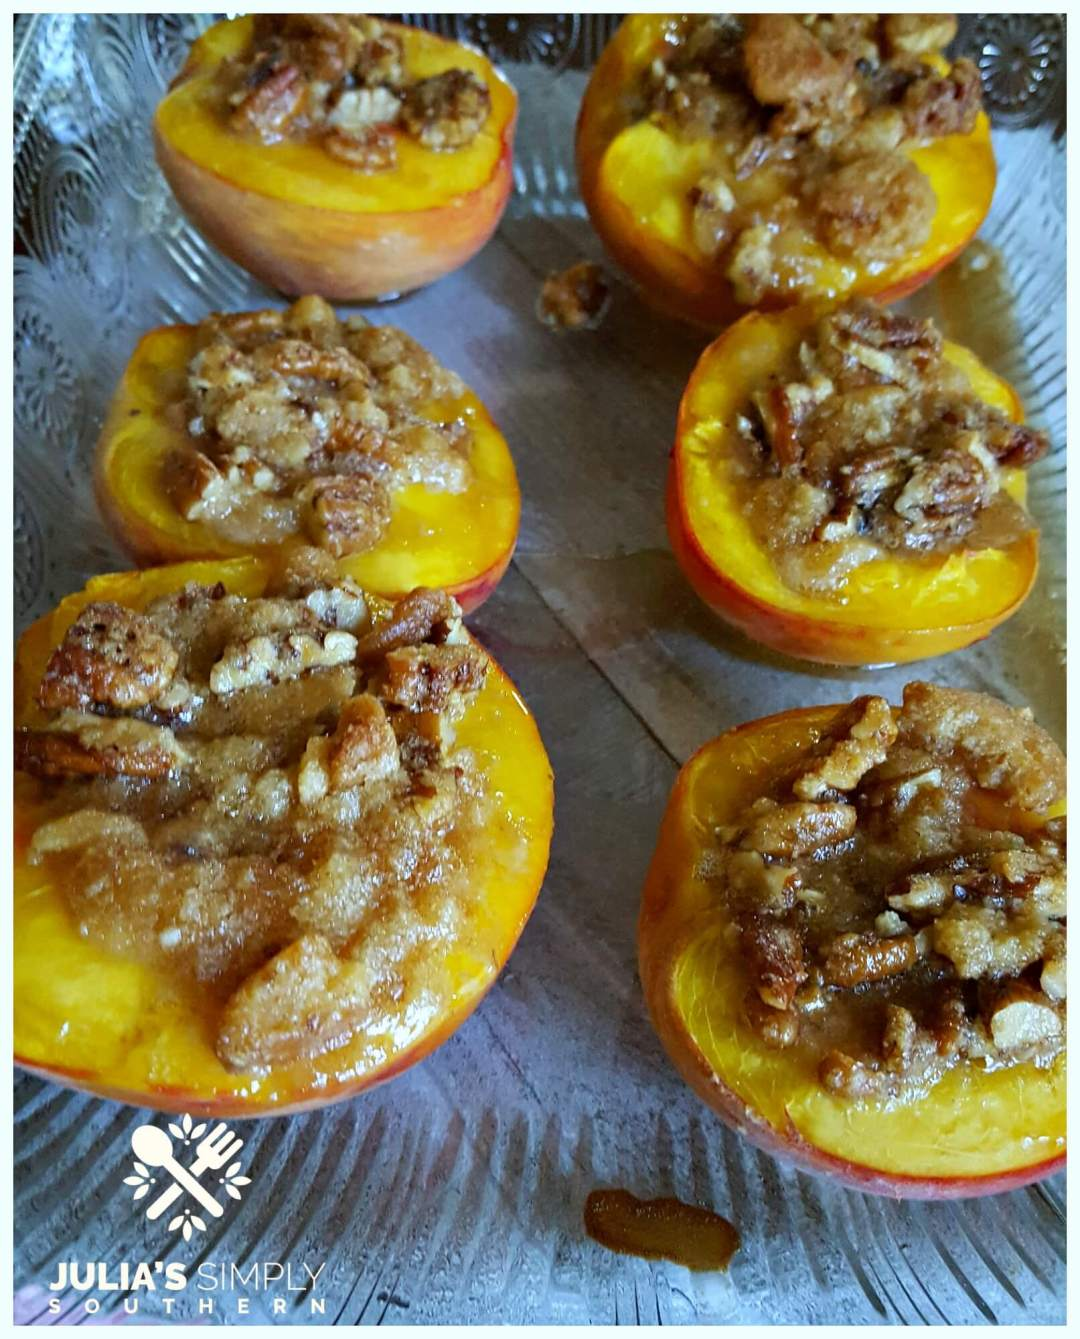 Baked peaches with bourbon topping